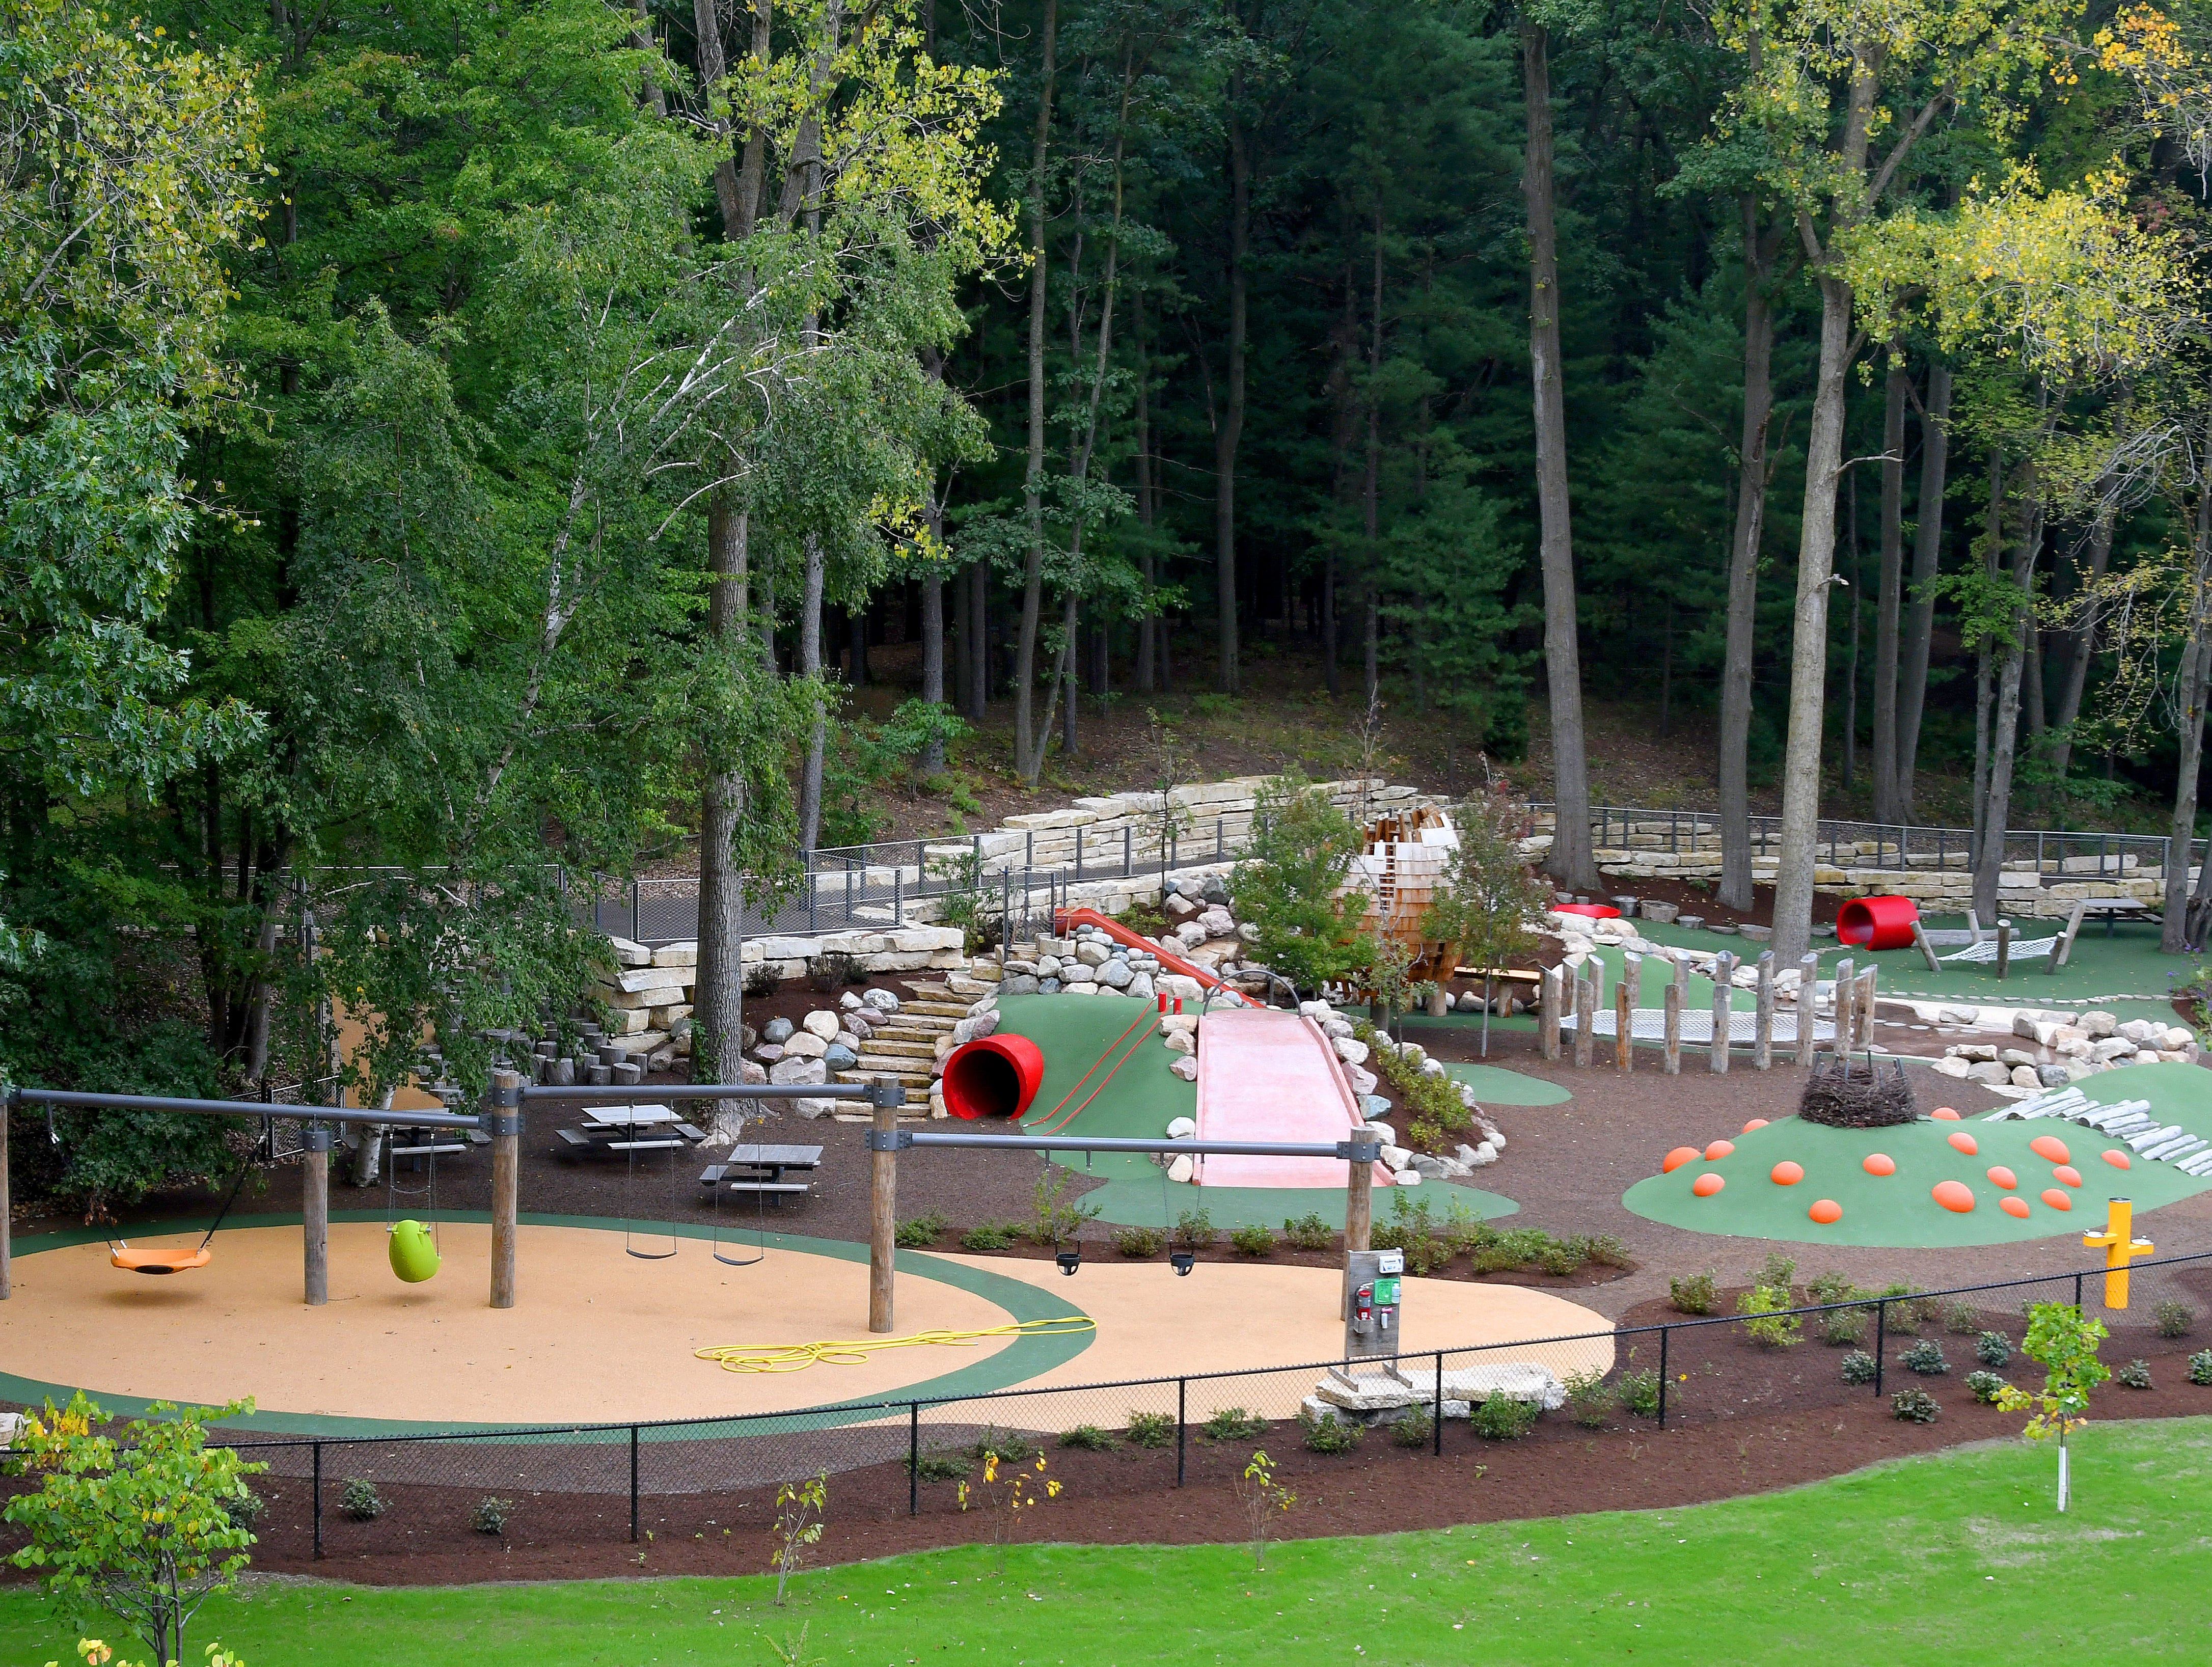 """The kids play area includes climbing and water adventures but is covered with soft landing areas to make it """"fall-friendly"""" in case somebody takes a tumble."""